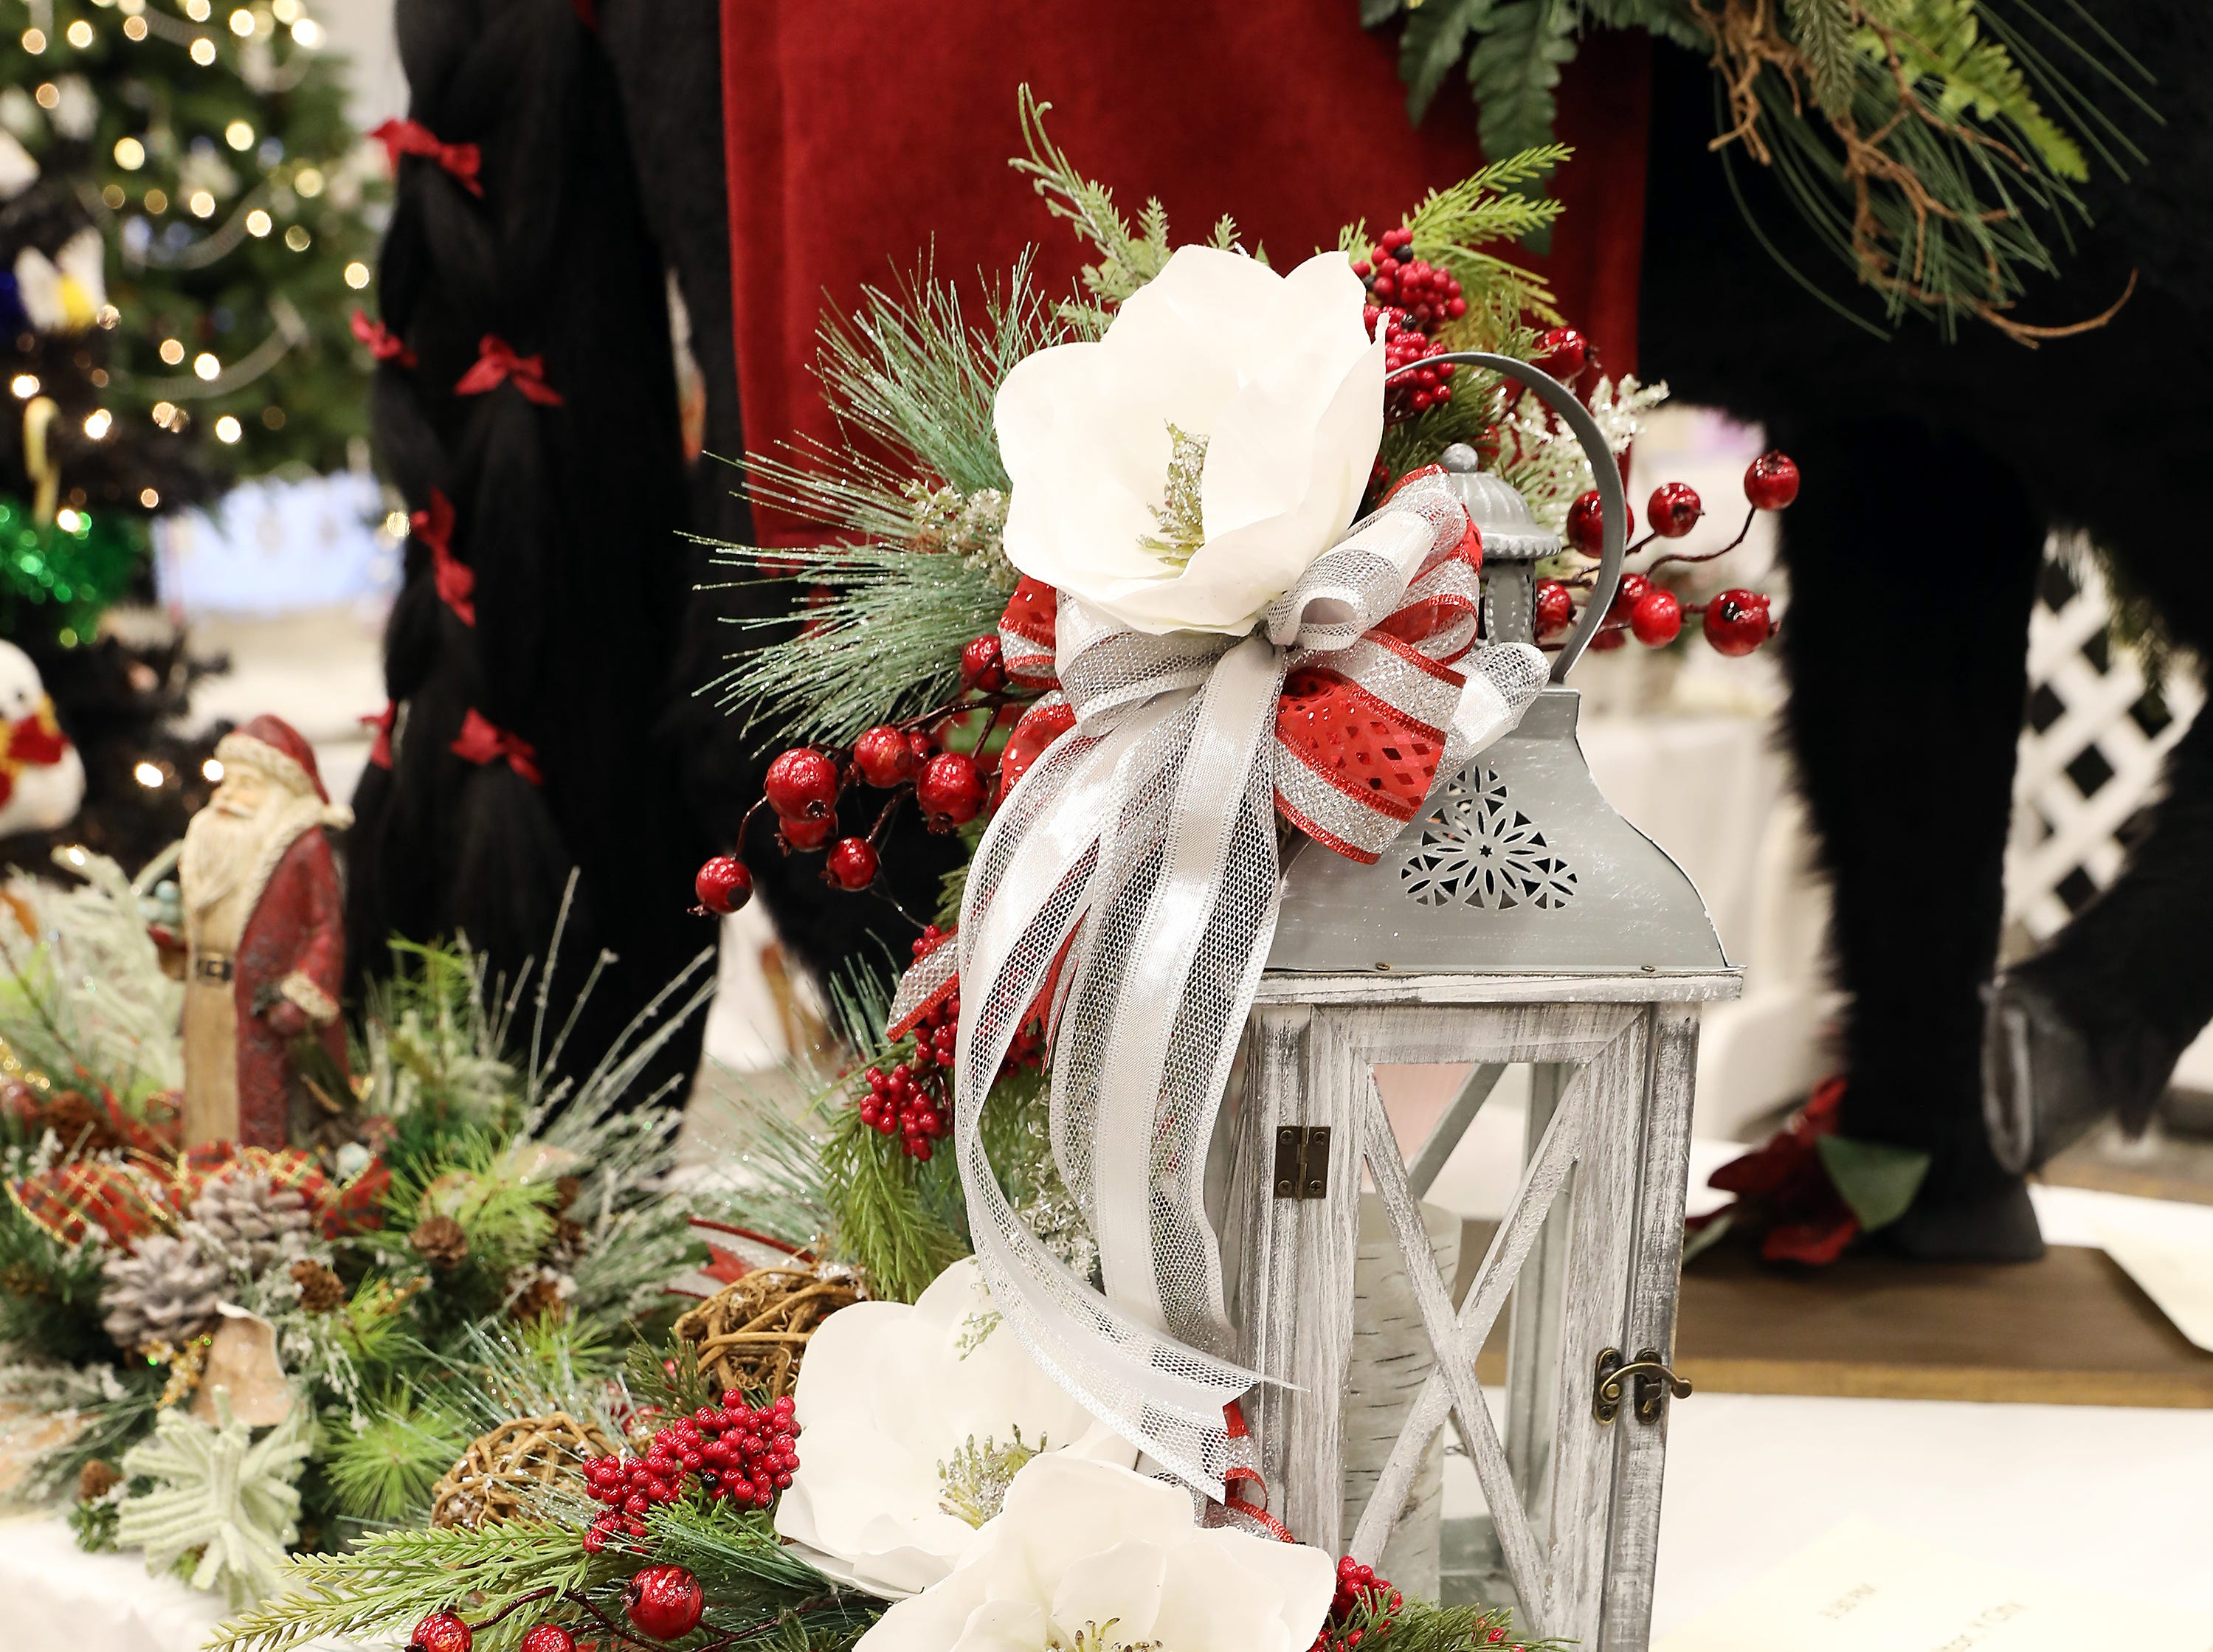 1653:30 PMTammy Findeiss Realtor, Y City RealtyCenterpieceA Warm Winter GlowA vintage lantern decorated with holiday evergreens and berries.  An LED candle to give a warm glow.$75 Winerak gift card and $75 gift card to Adornetto's, Giacomo's, Old Market House Inn.